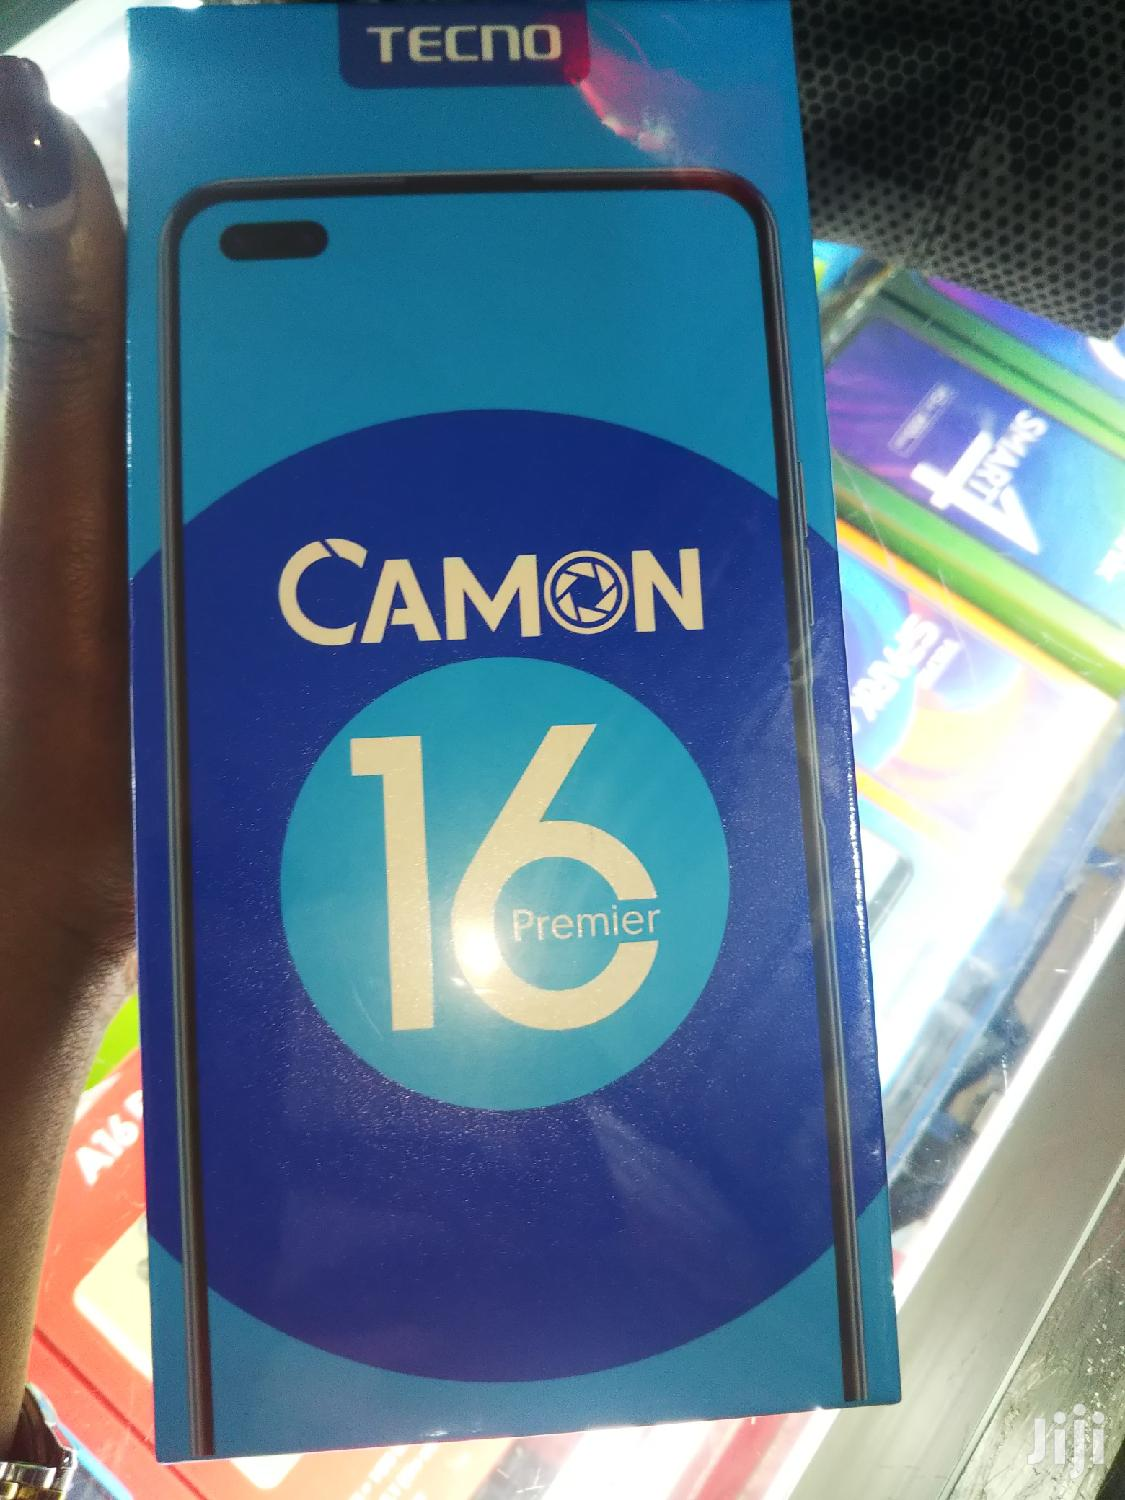 Archive: New Tecno Camon 16 Premier 128GB Black